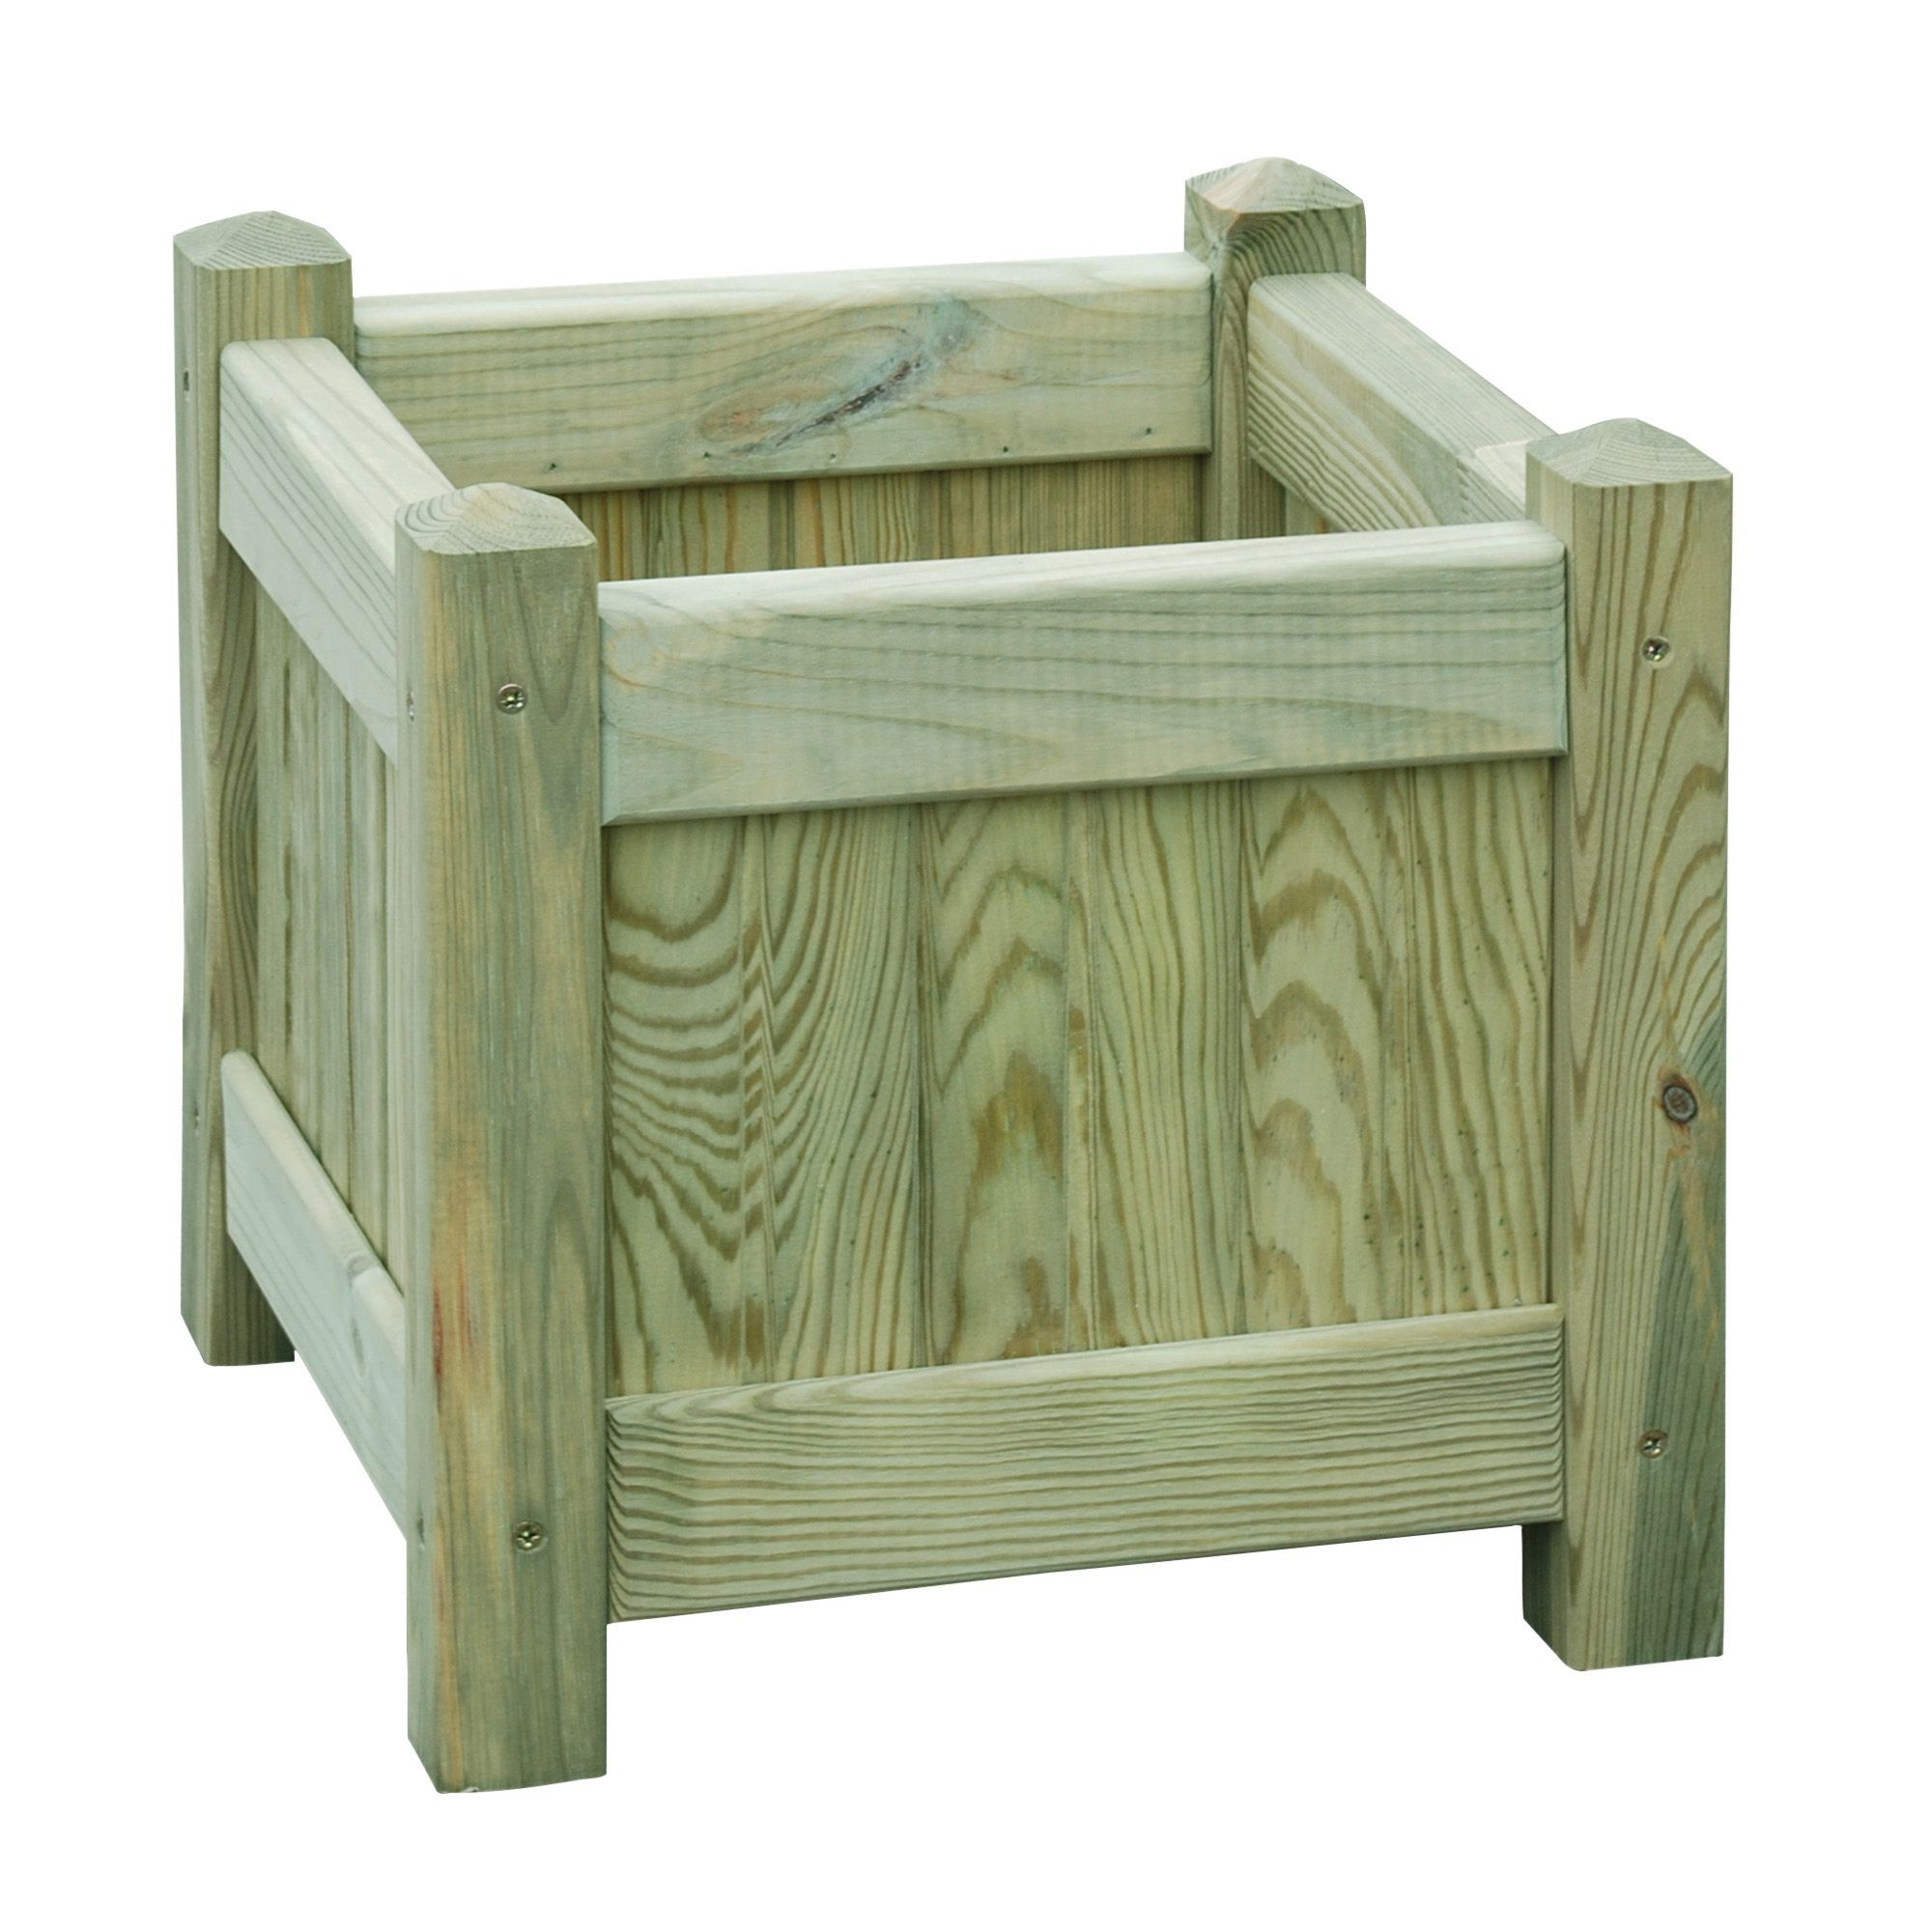 Square Wooden Planter   Bu0026Q For All Your Home And Garden Supplies And  Advice On All The Latest DIY Trends